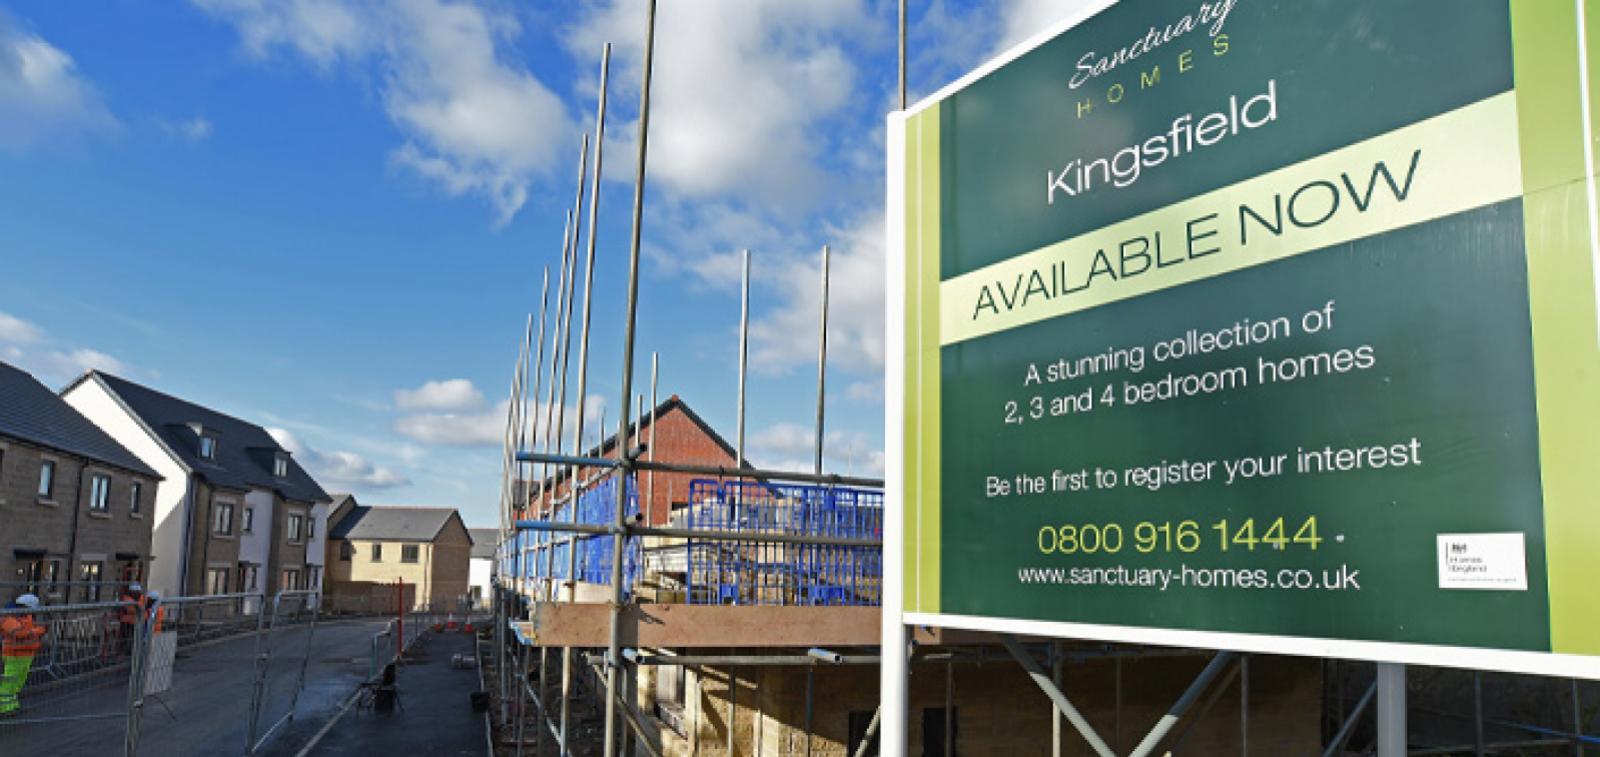 Sanctuary Homes' Kingsfield development